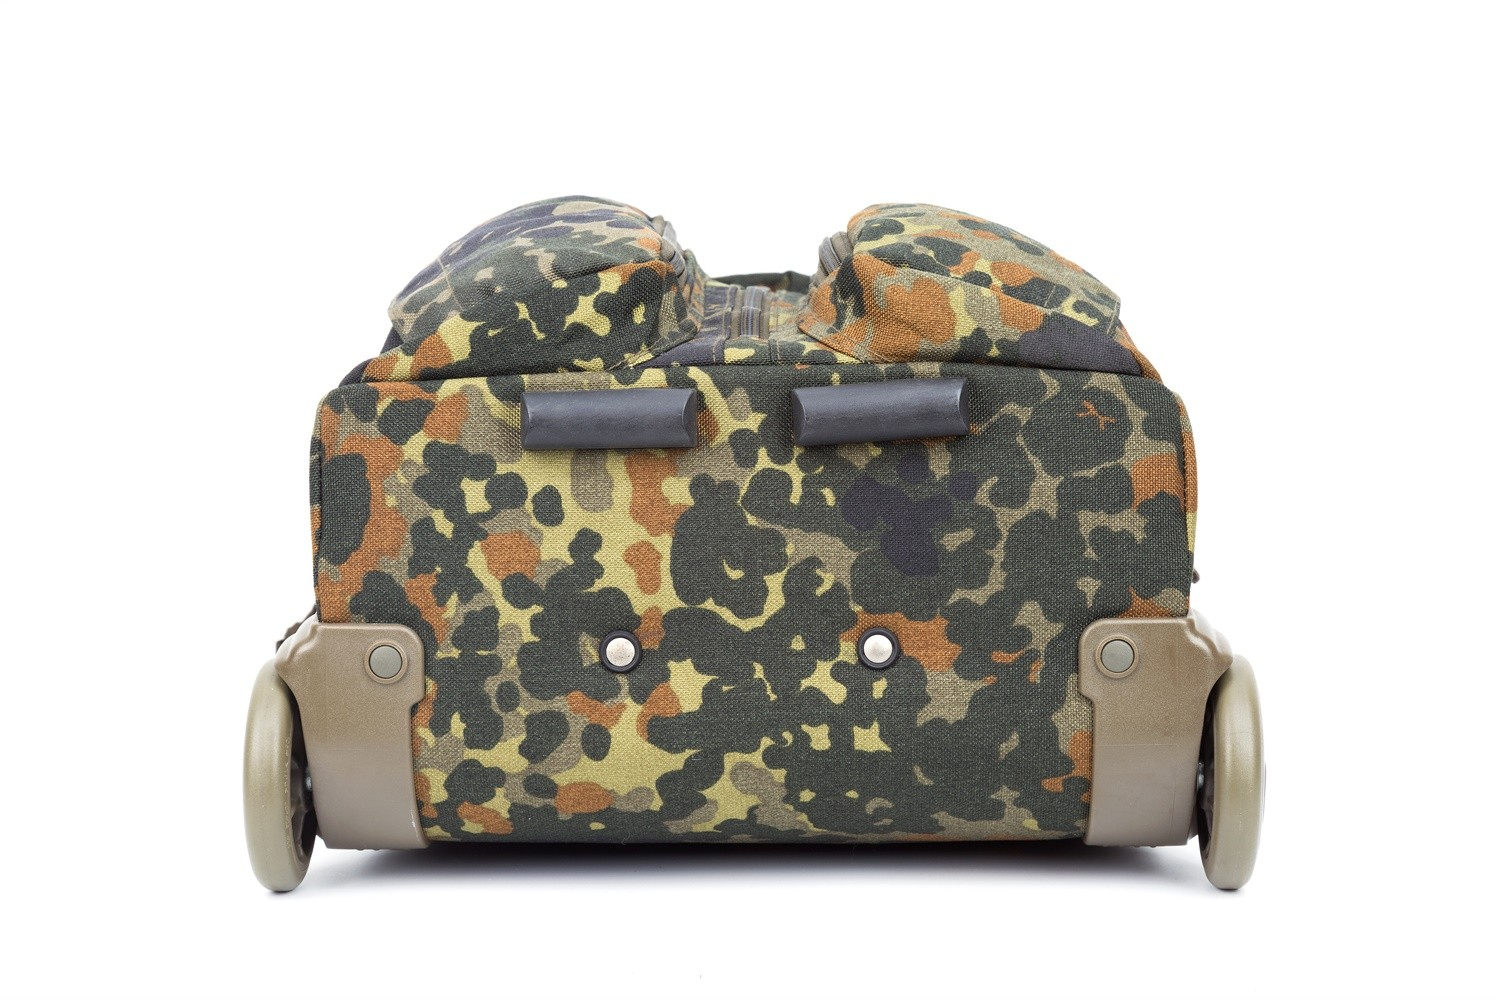 GF bags-Find Military Style Backpack Tactical Gear Backpack - GF Bags-8